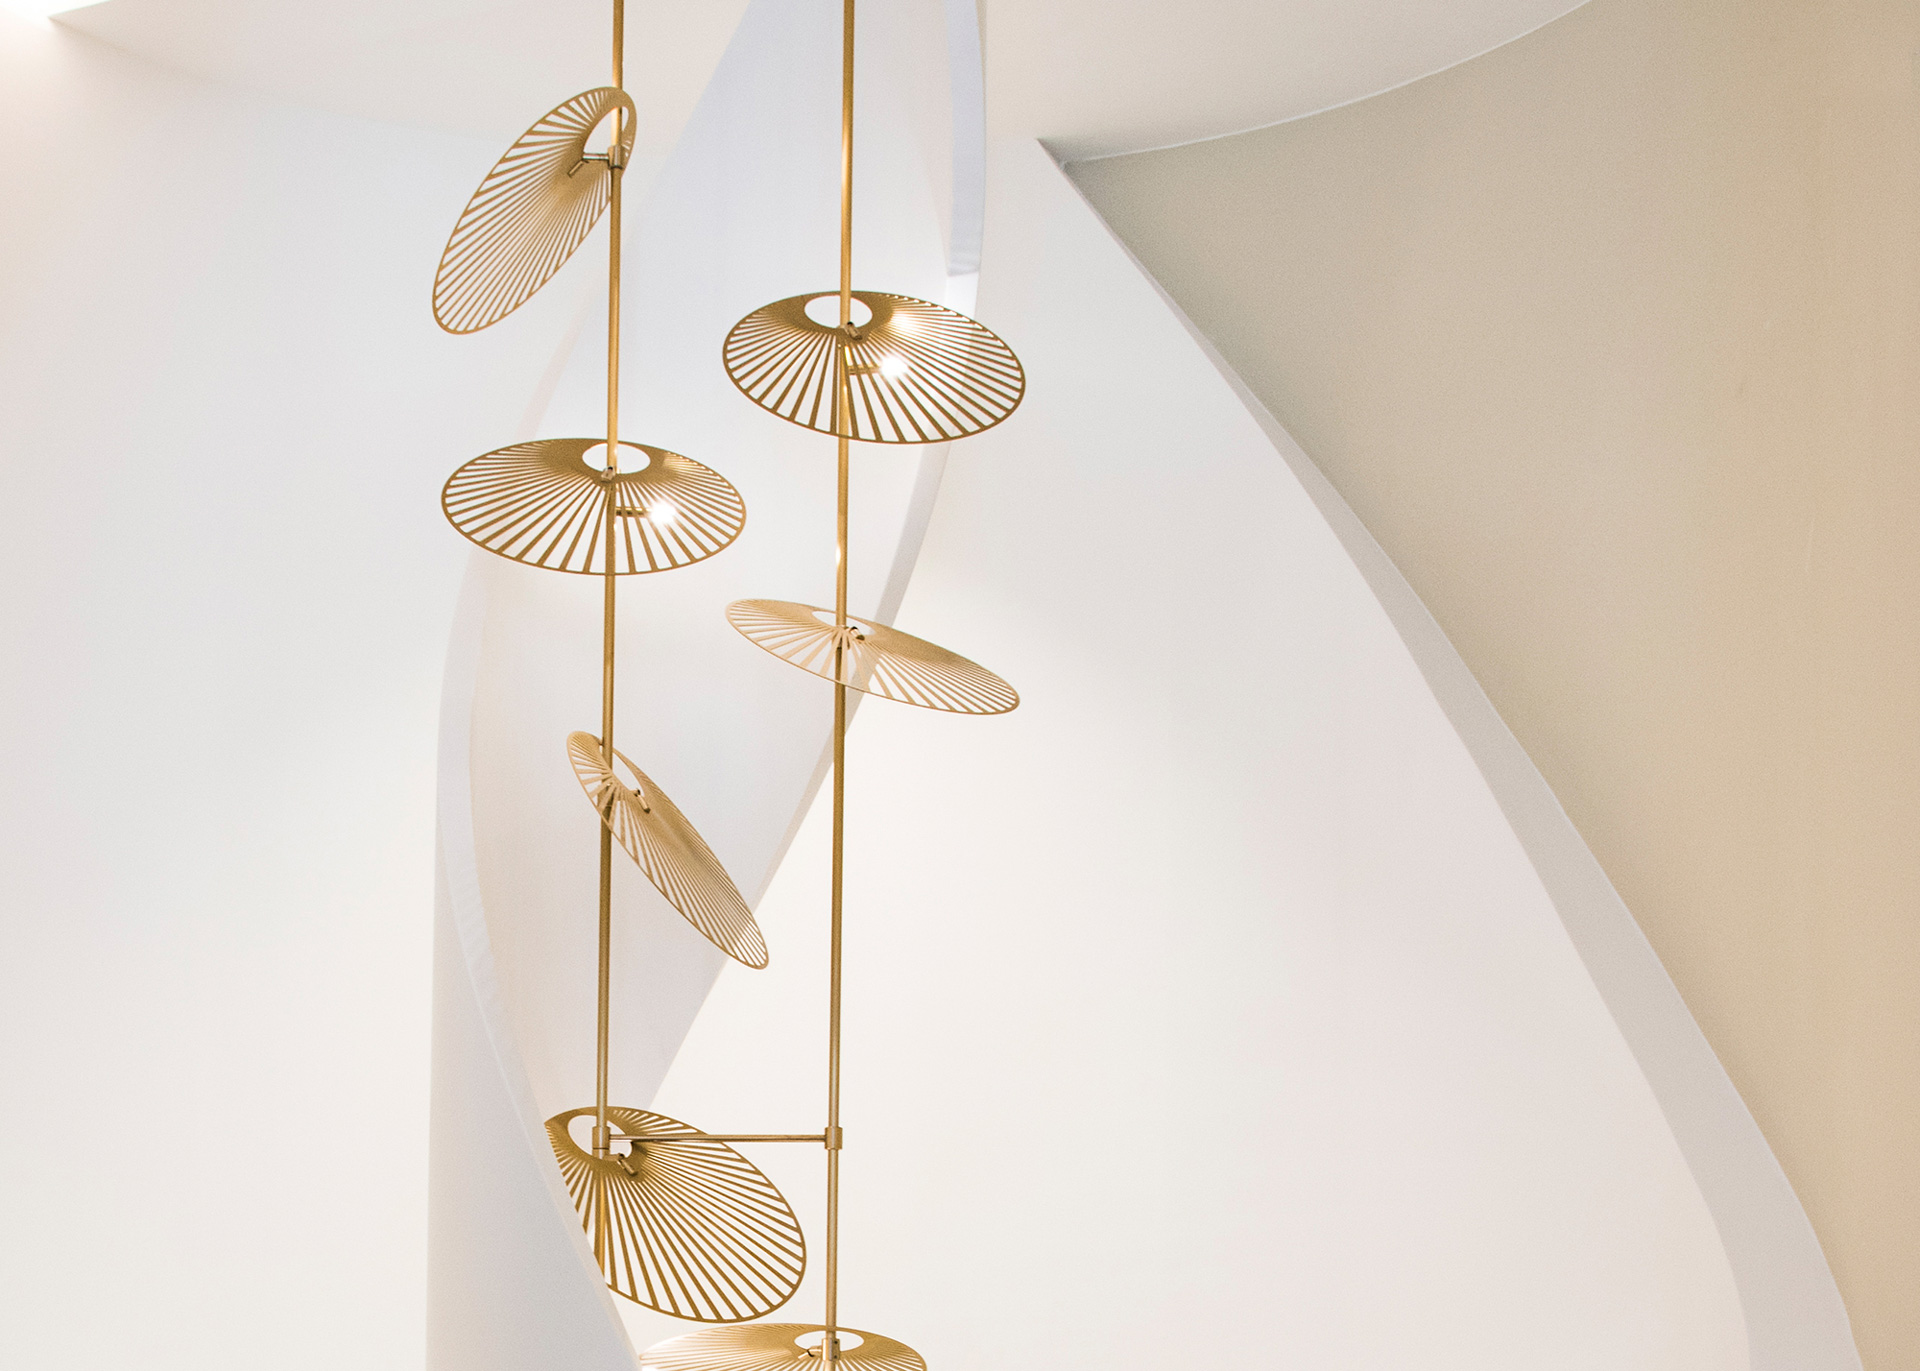 Product-Leaf-Luum-Lighting